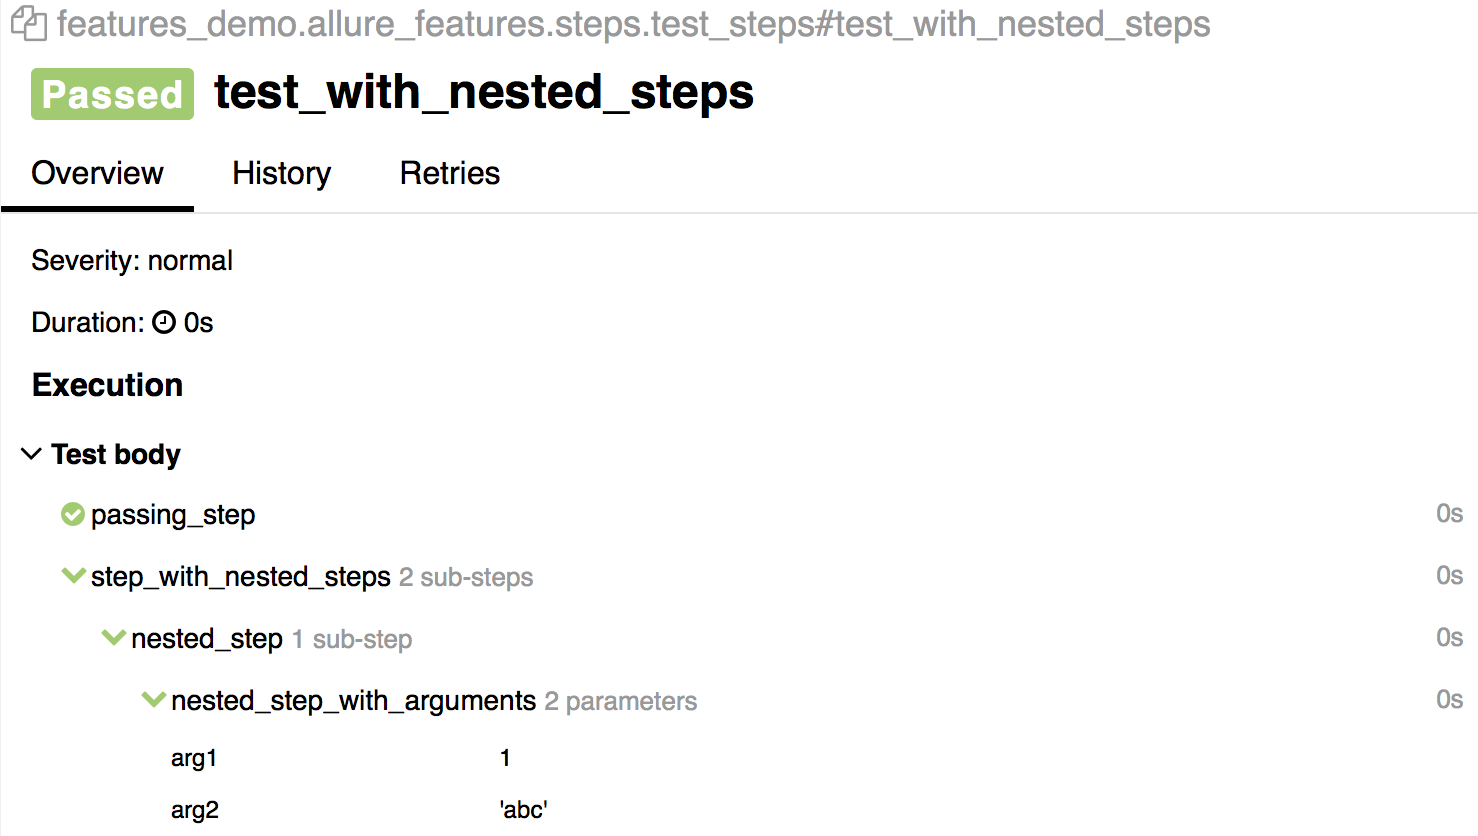 Nested steps and steps with arguments.